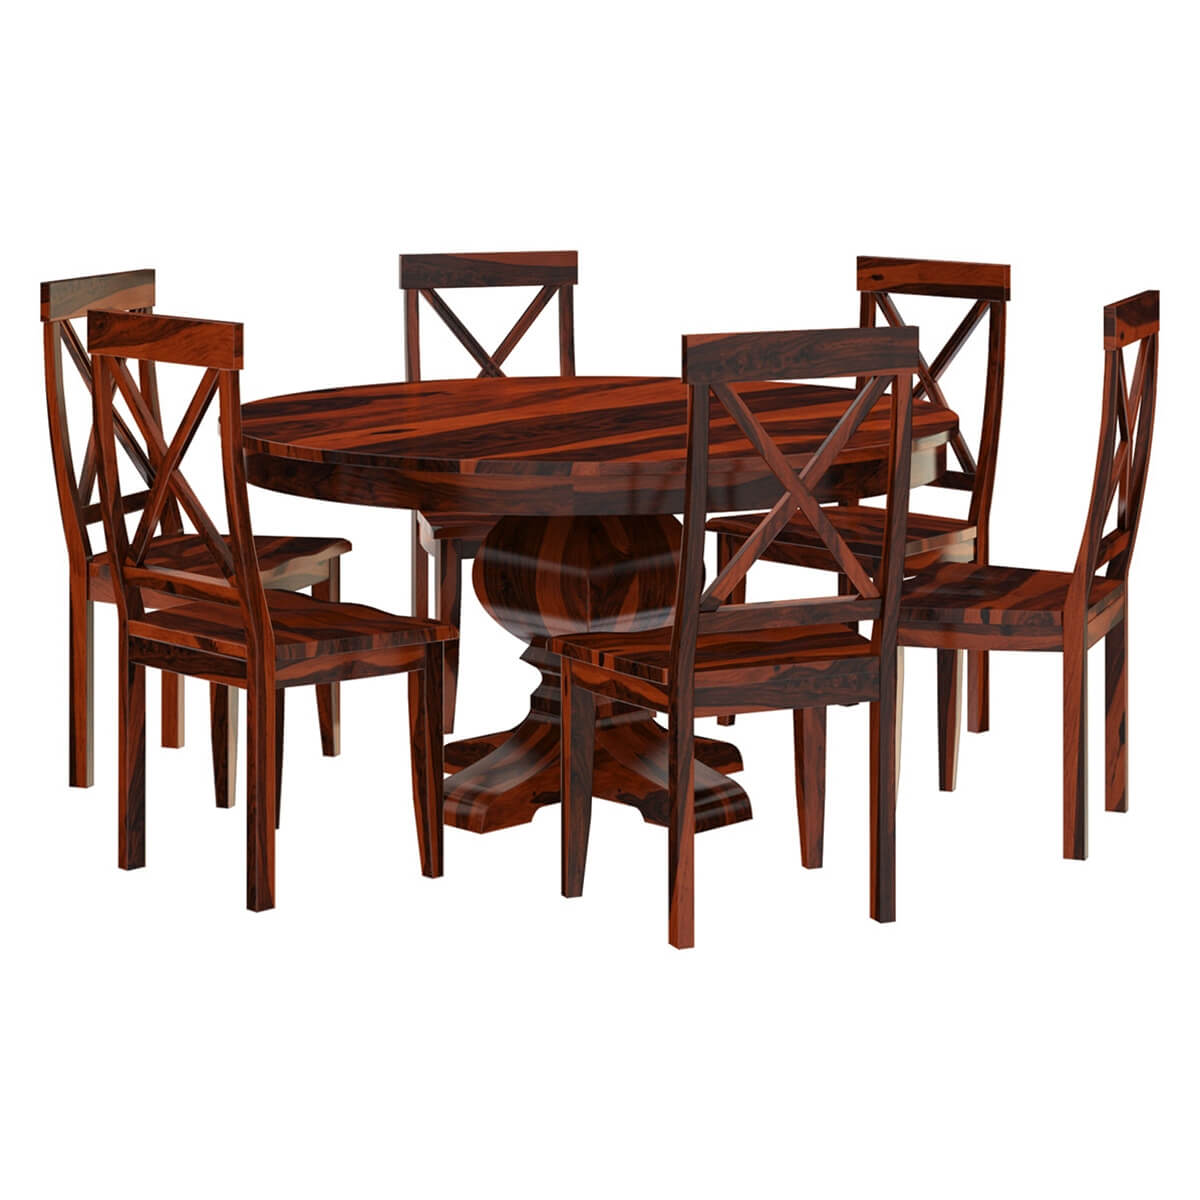 Round Dining Table And Chairs Missouri Solid Wood Round Pedestal Dining Table And Chairs